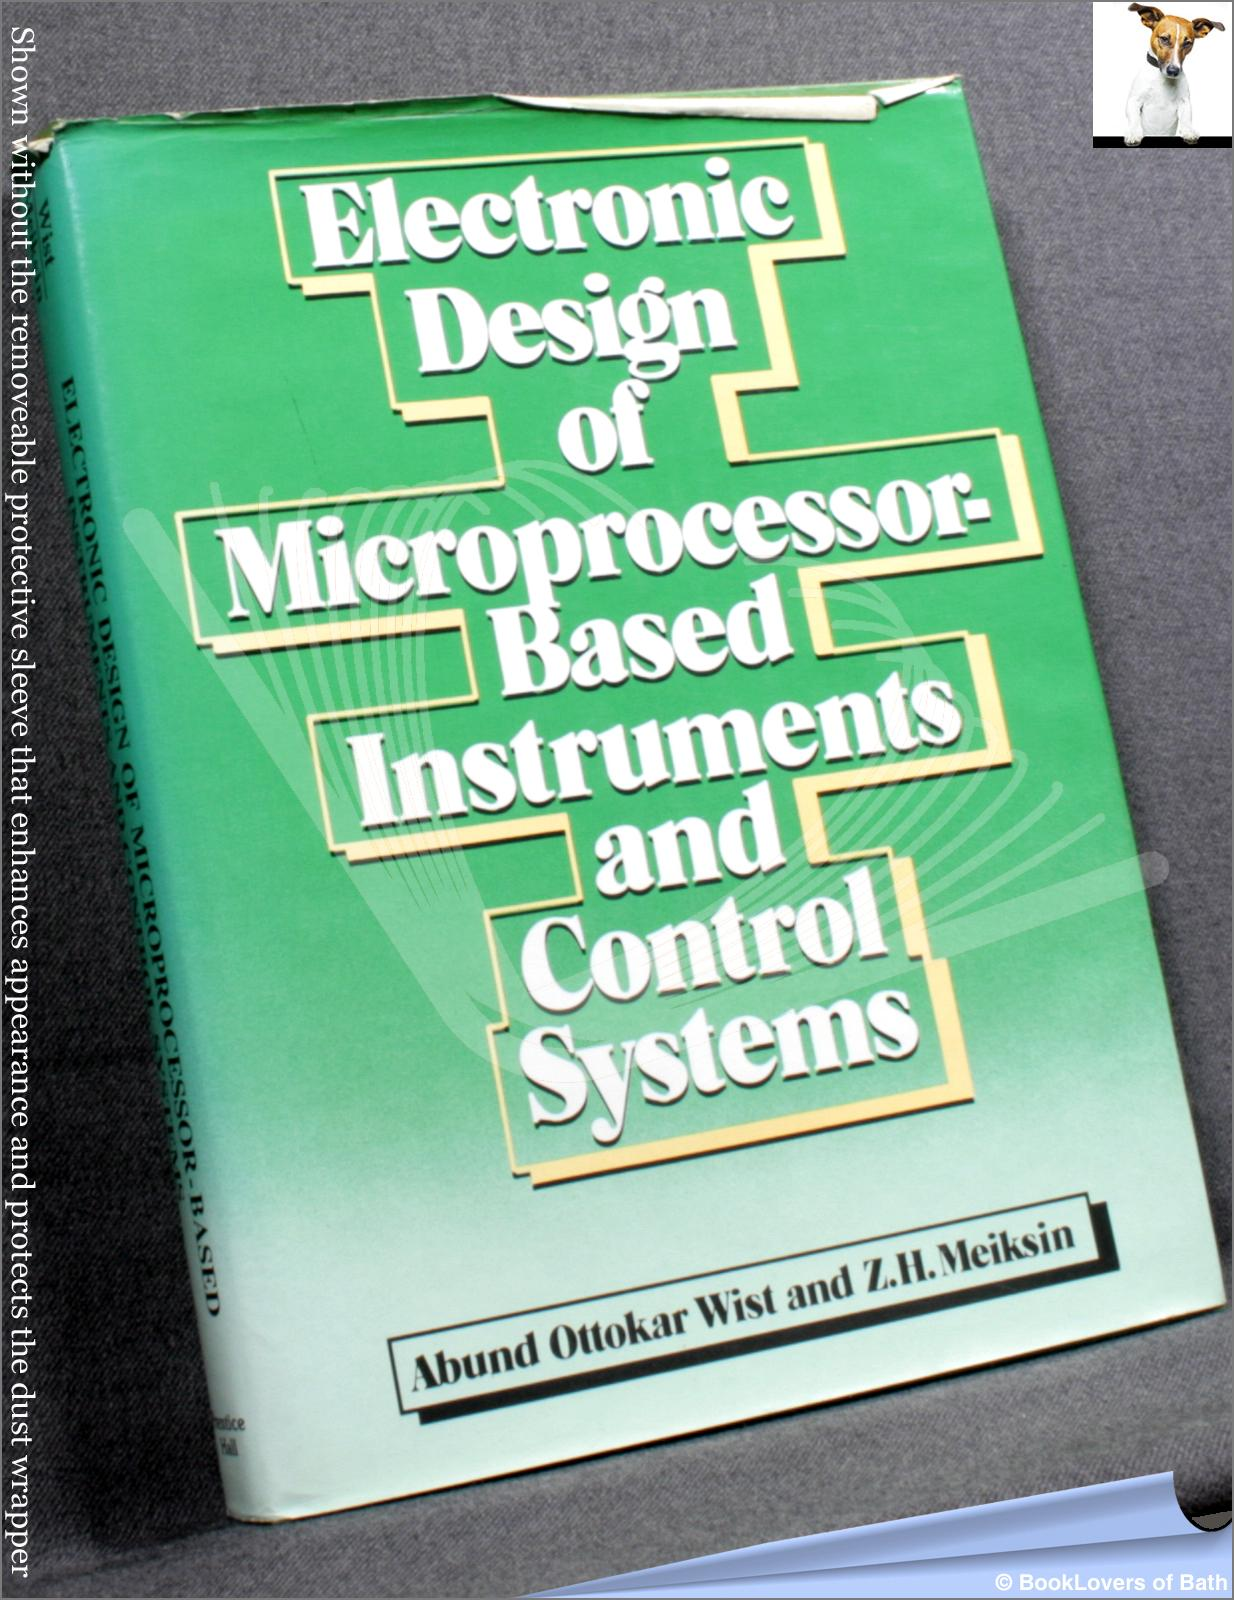 Electronic Design of Microprocessor Based Instruments And Control Systems - Abund Ottokar Wist;  Z. H. Meiksin;